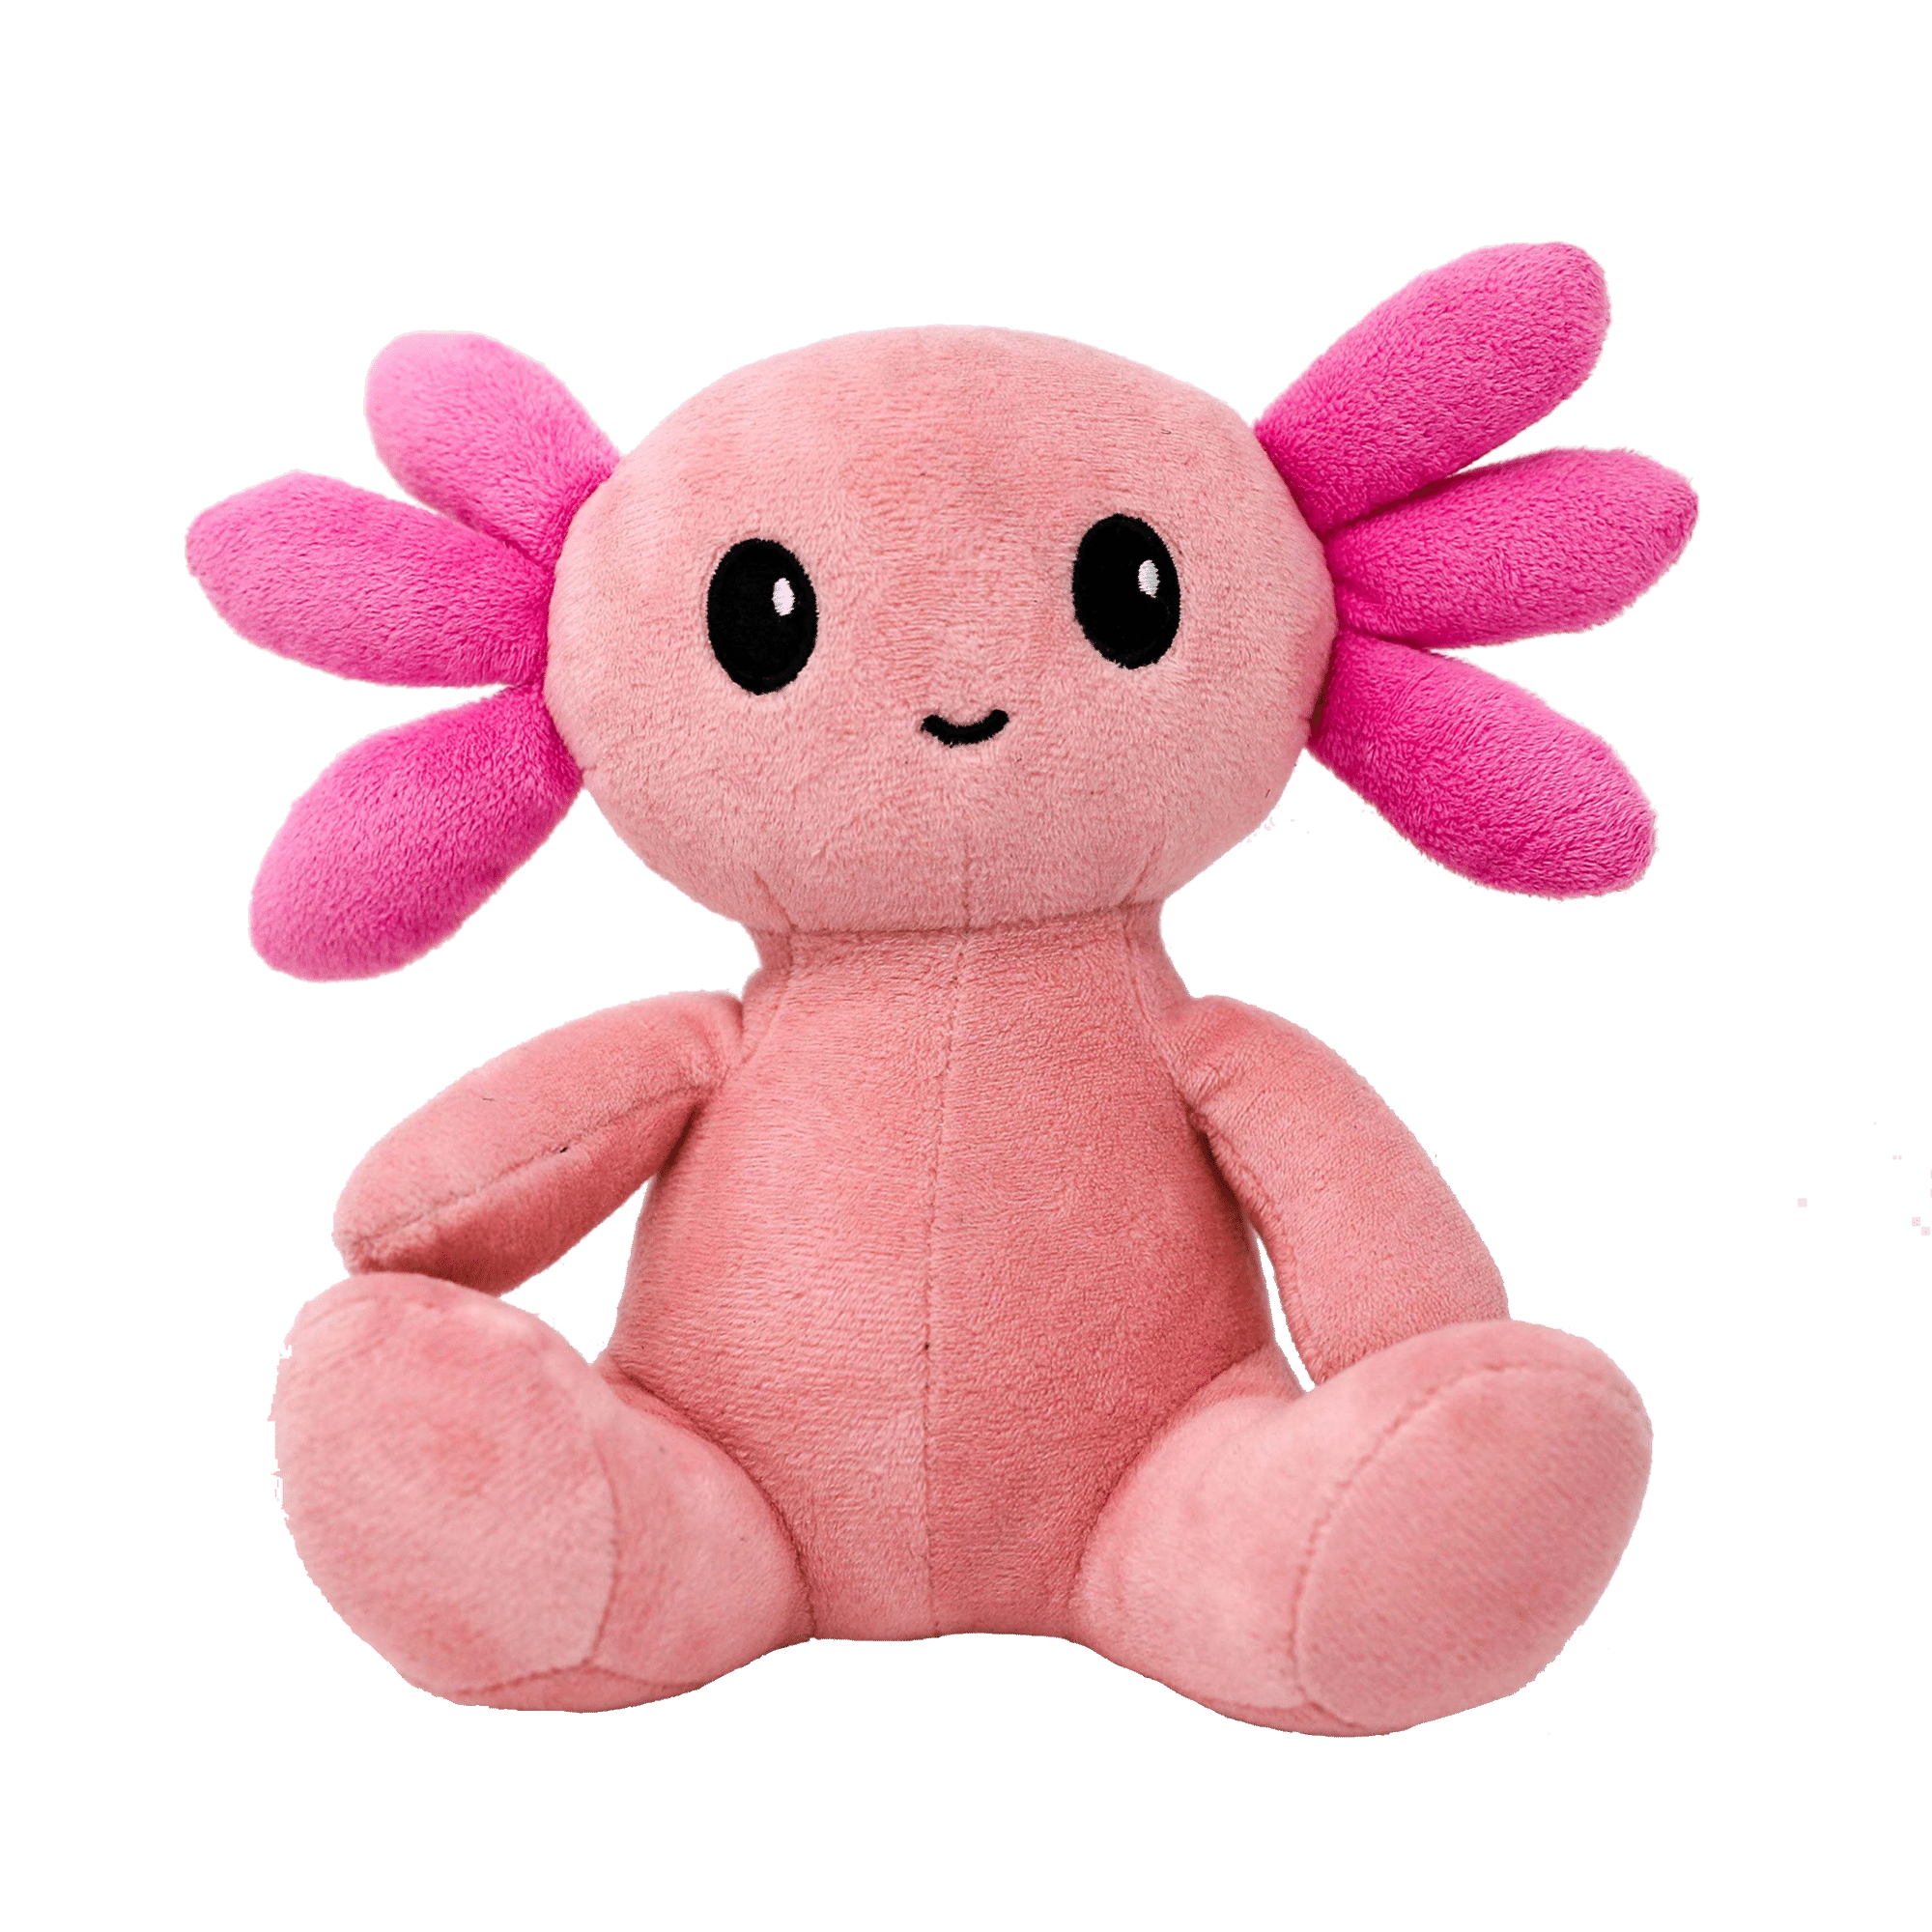 Axol the Axolotl is a sustainable ethical and socially conscious plush product designed in the image of the rare Mexican salamander, the Axolotl. This plush is made of organic cotton and measures 19 cm tall.